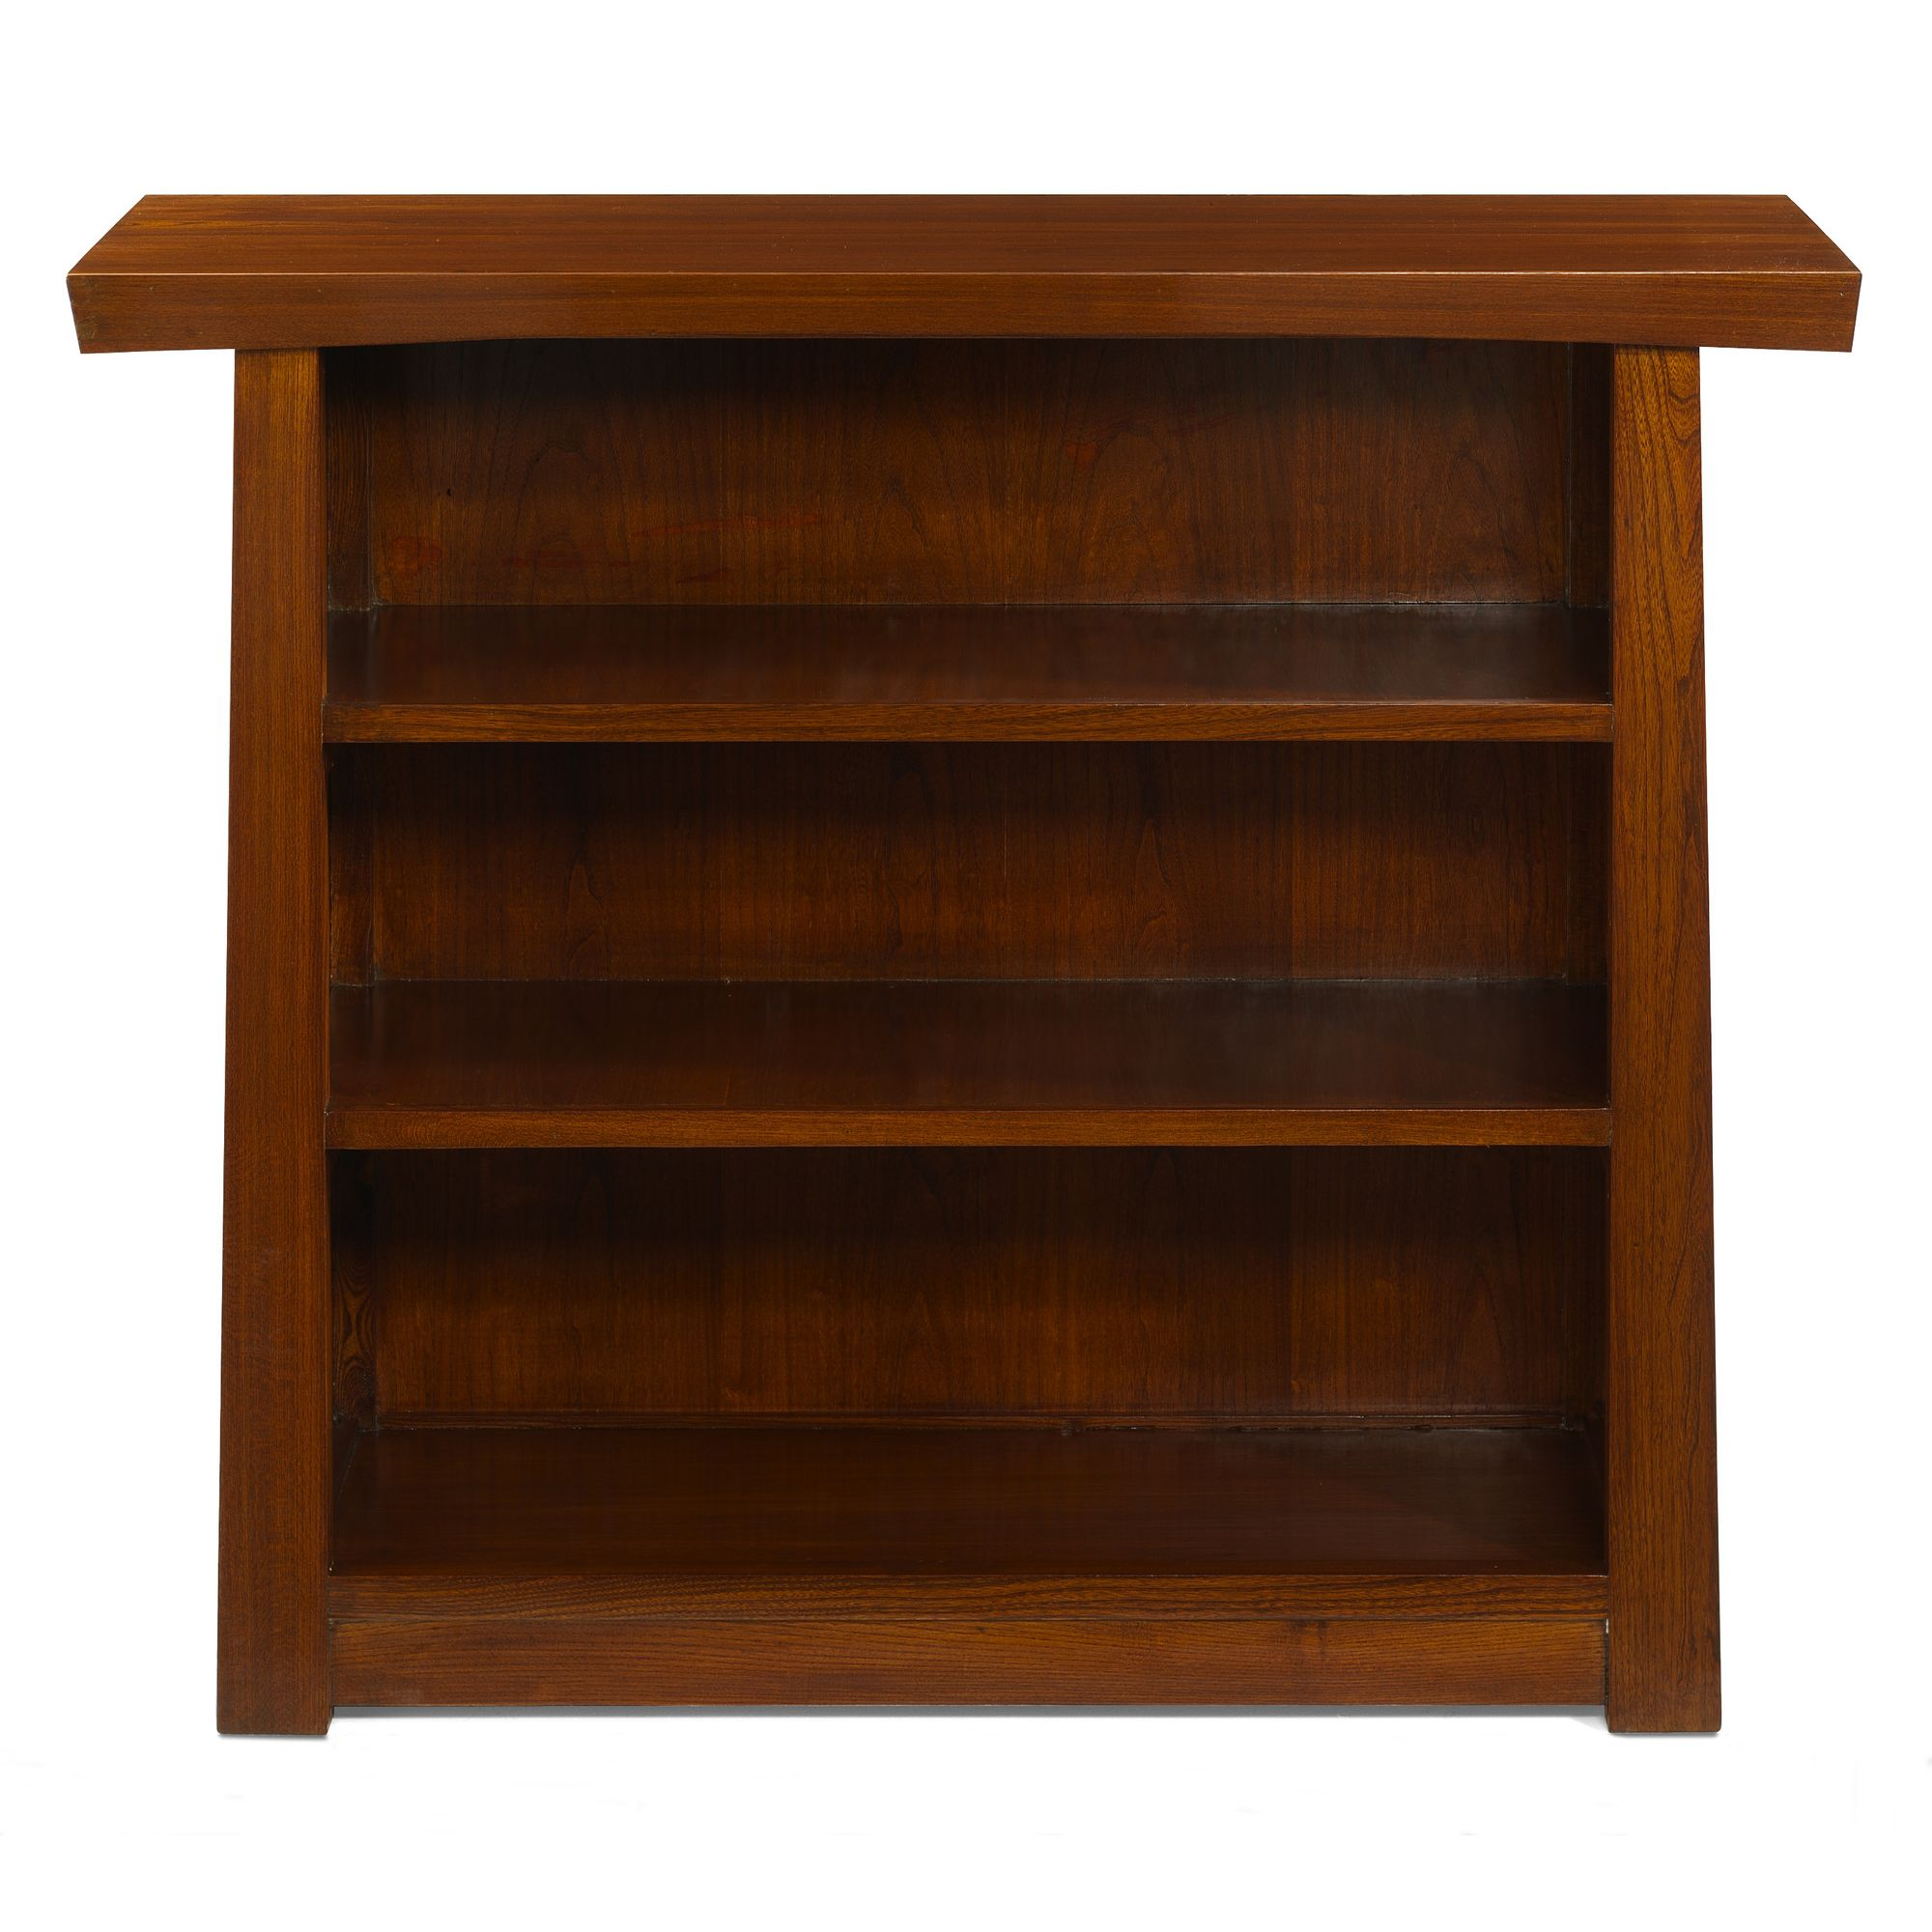 Shimu Asian Contemporary Bookshelf at Tesco Direct